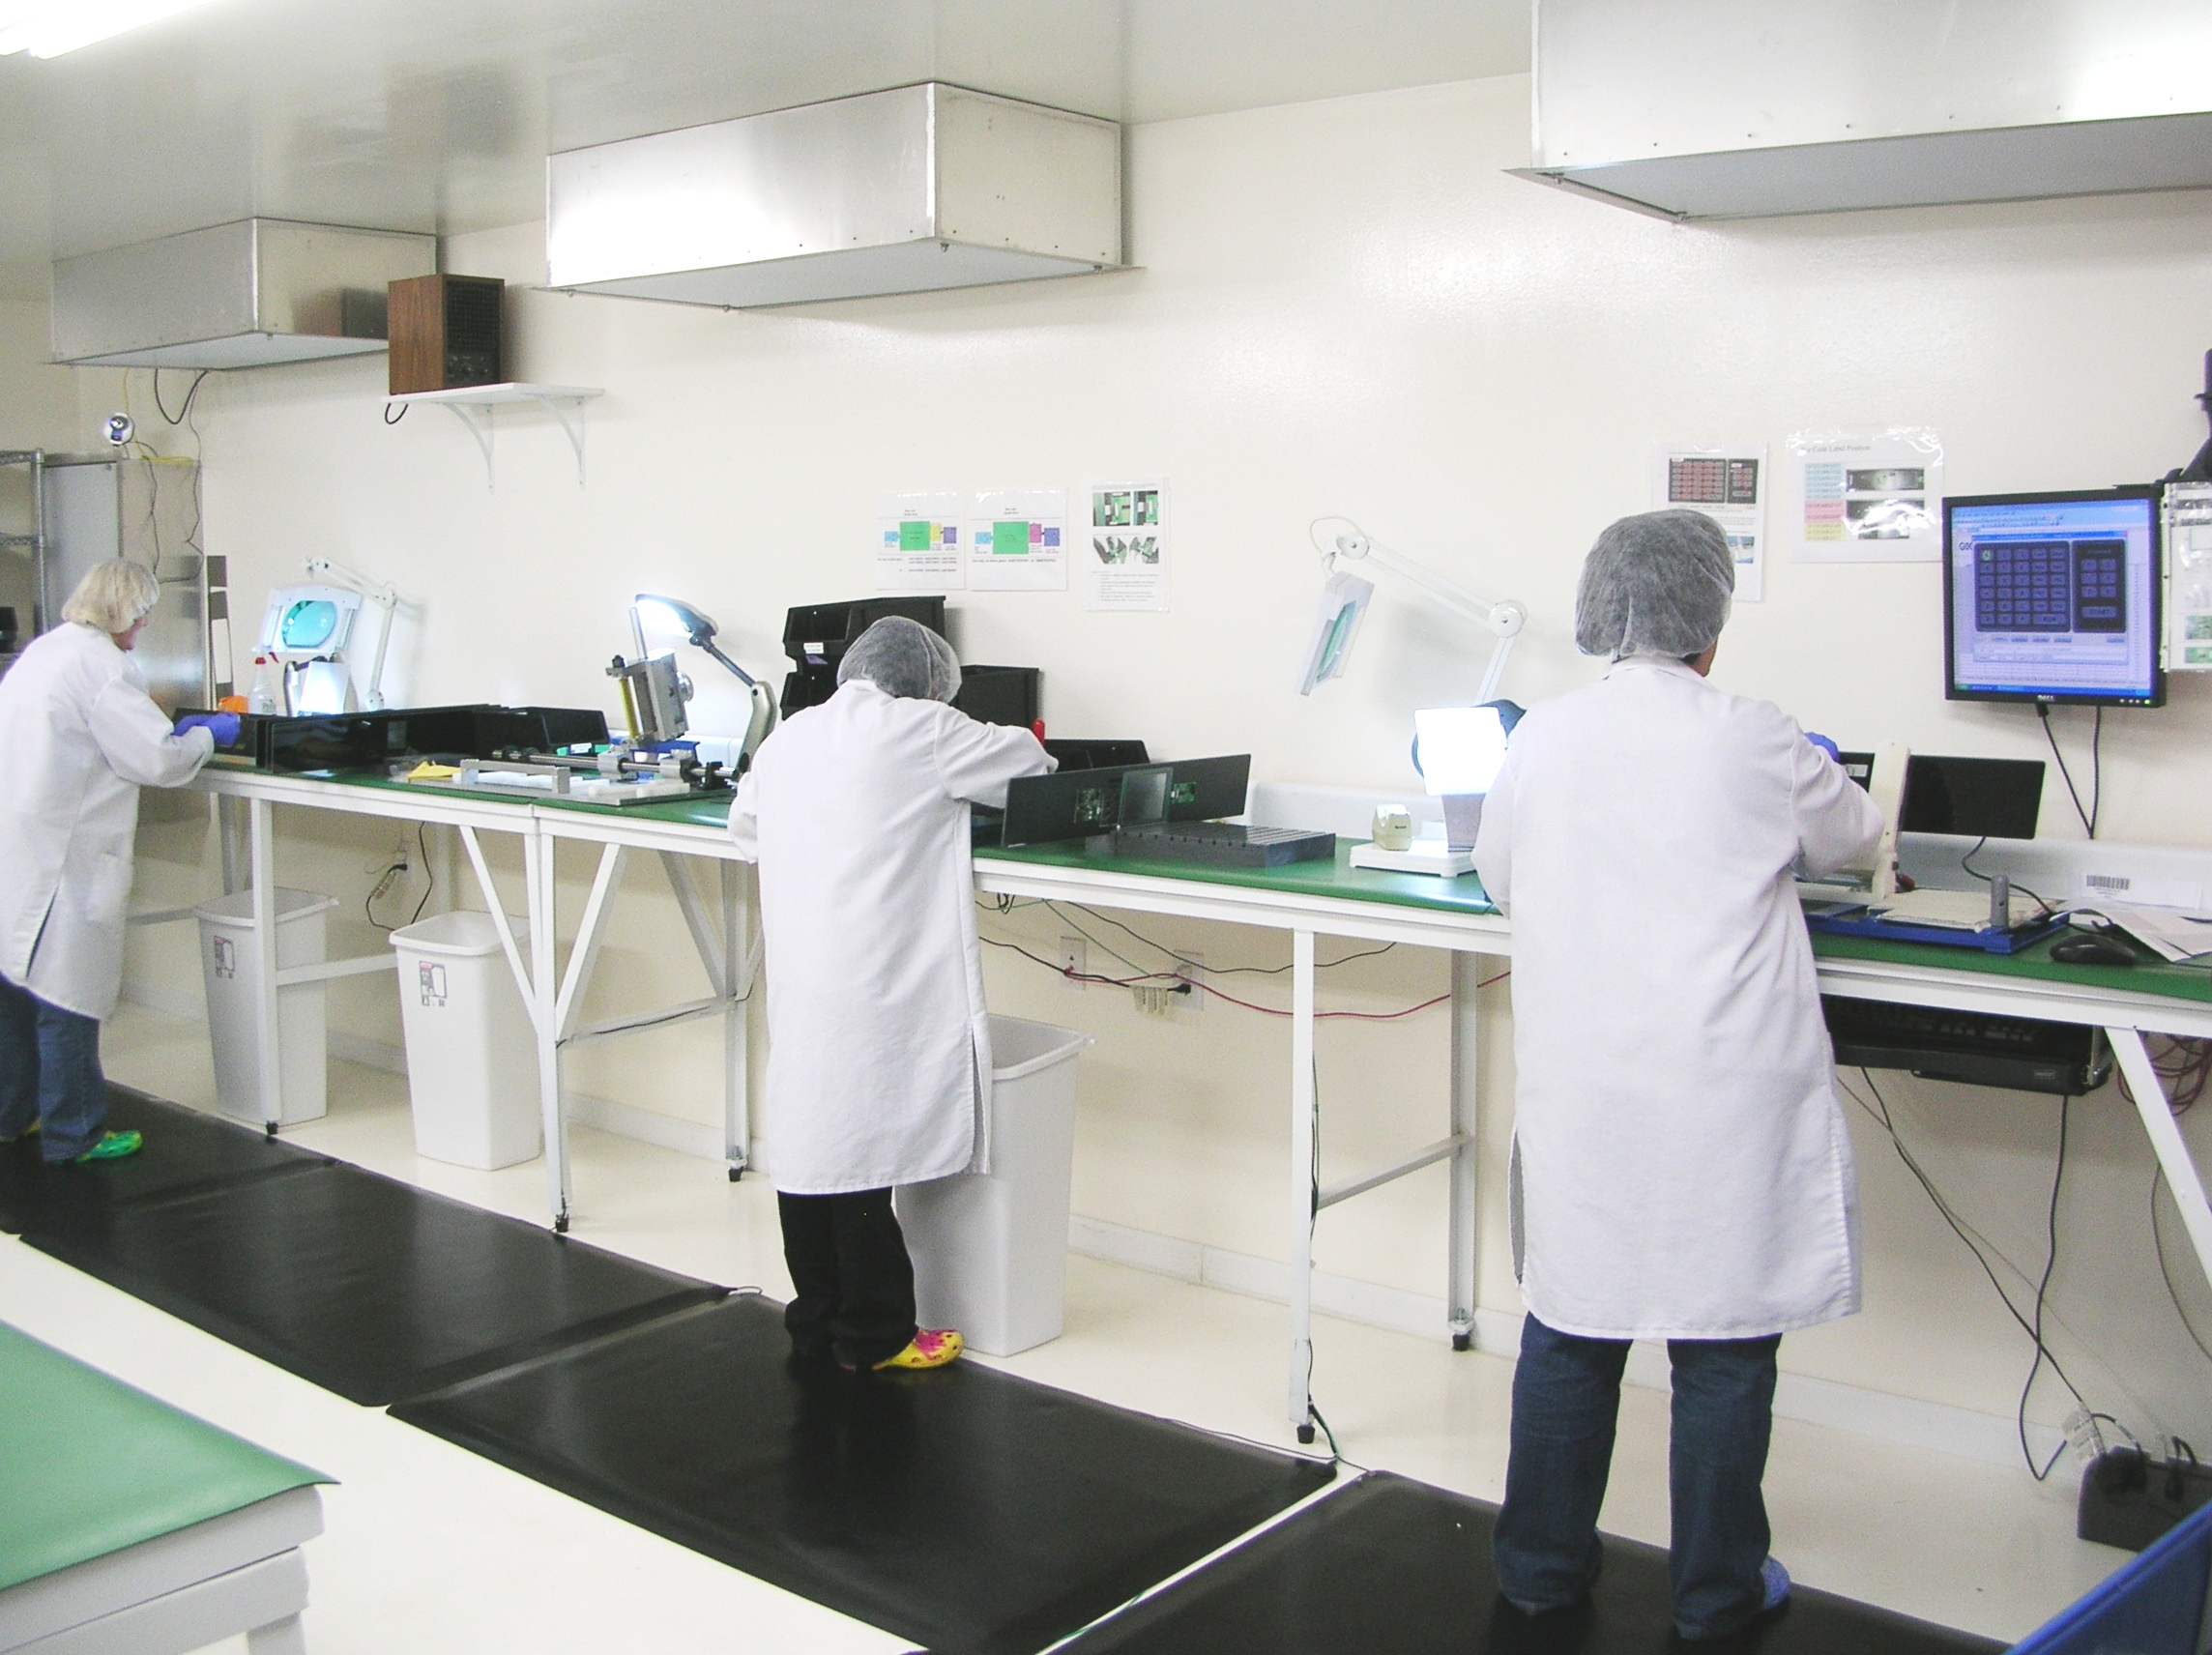 how to get clean room certification